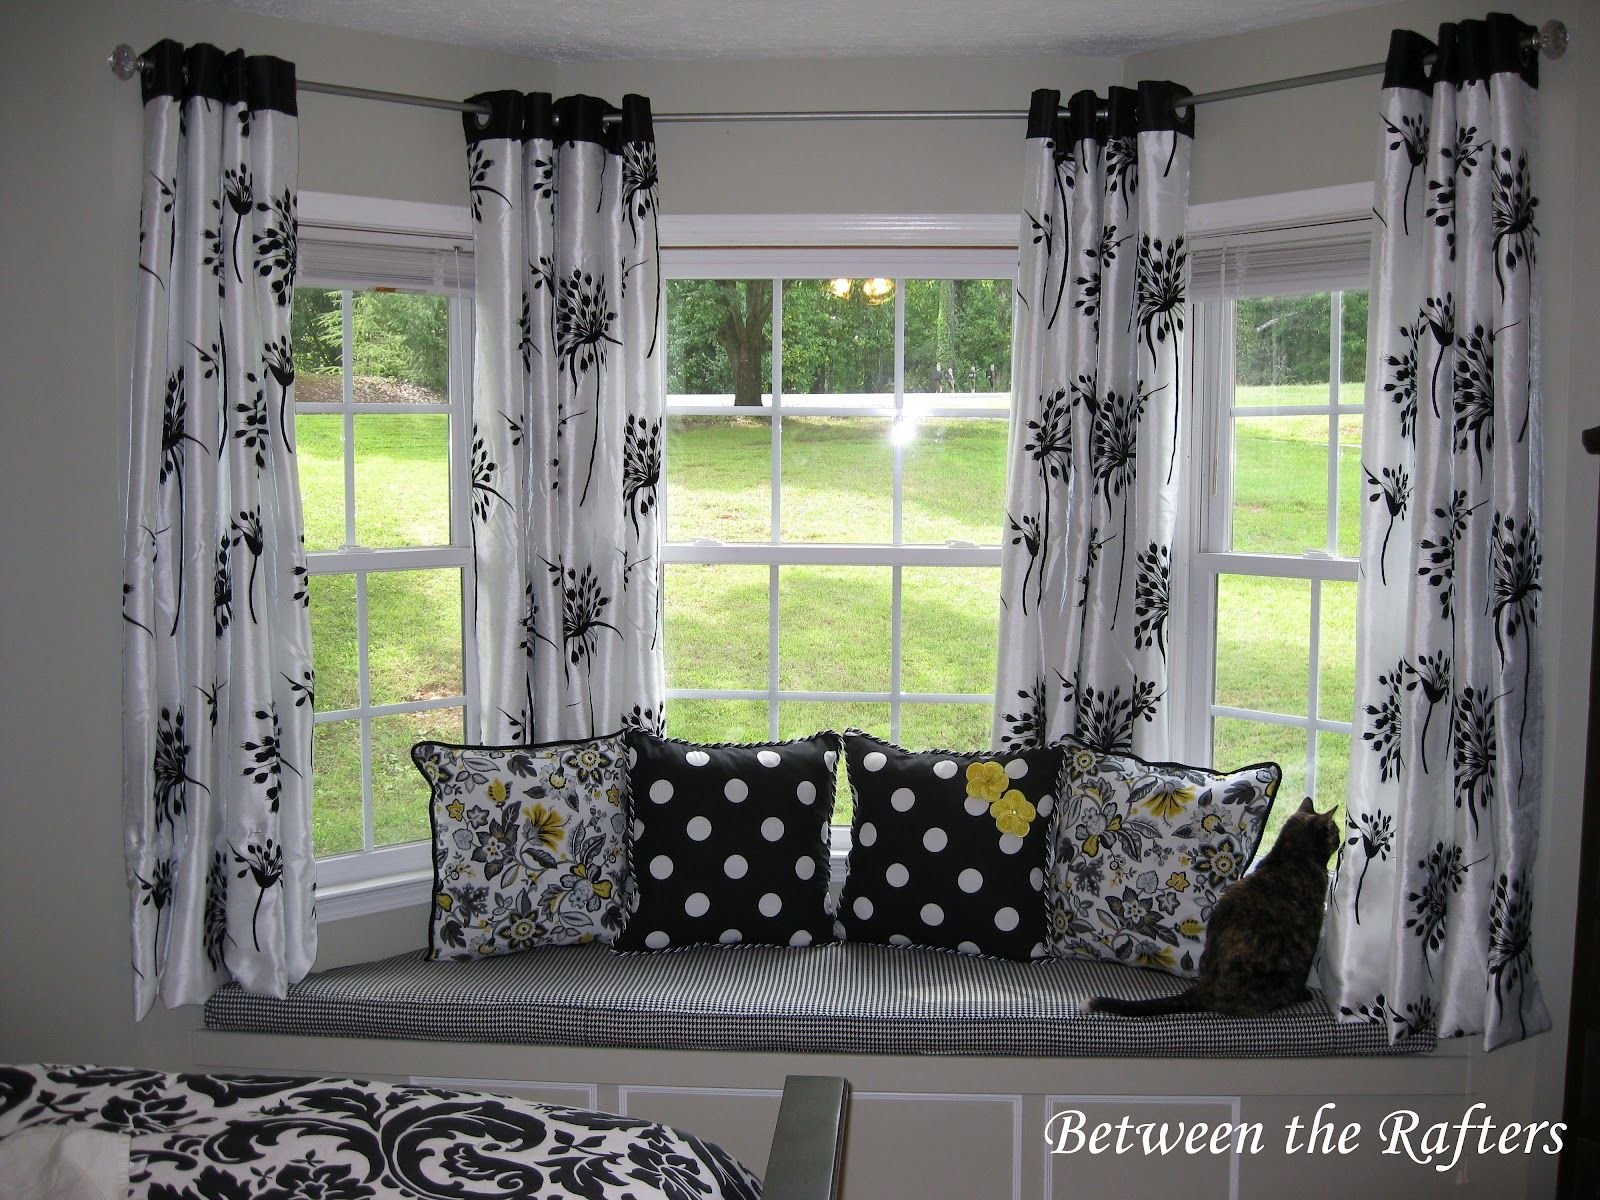 Bedroom bay window designs - Between The Rafters Do It Yourself Bay Window Curtain Rod Tutorial